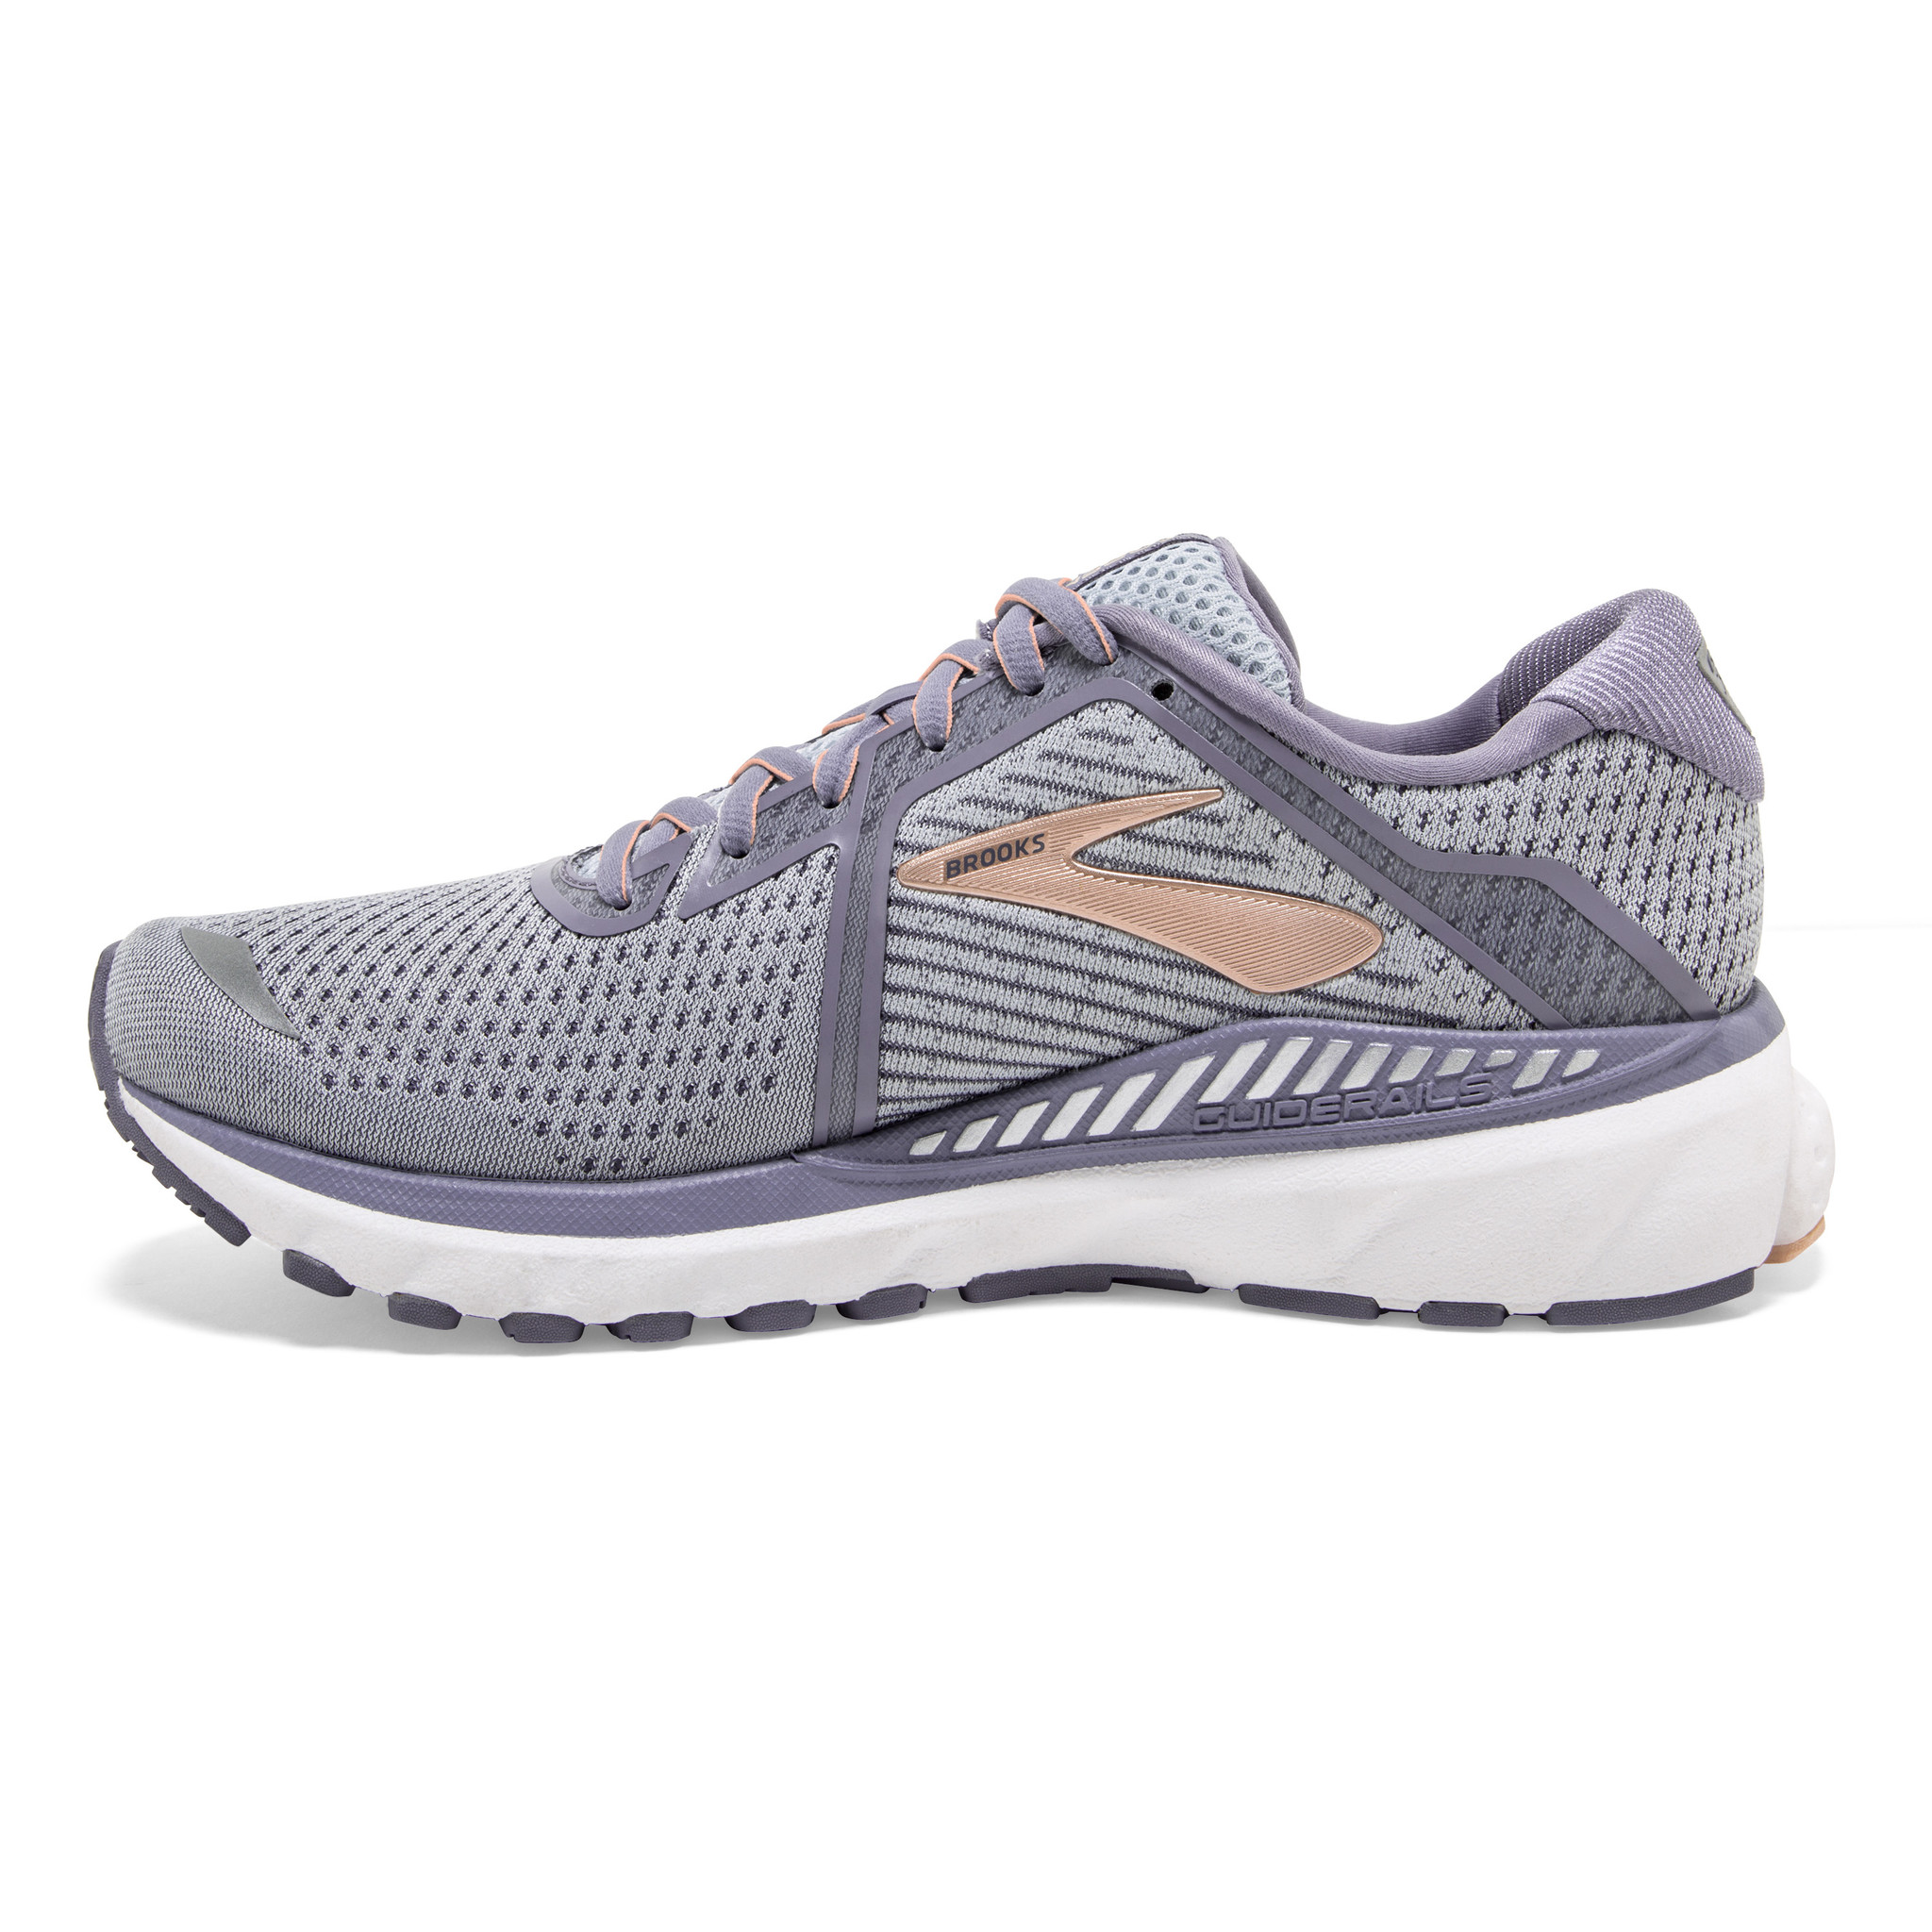 Brooks Brooks Adrenaline GTS 20 Wide - Women